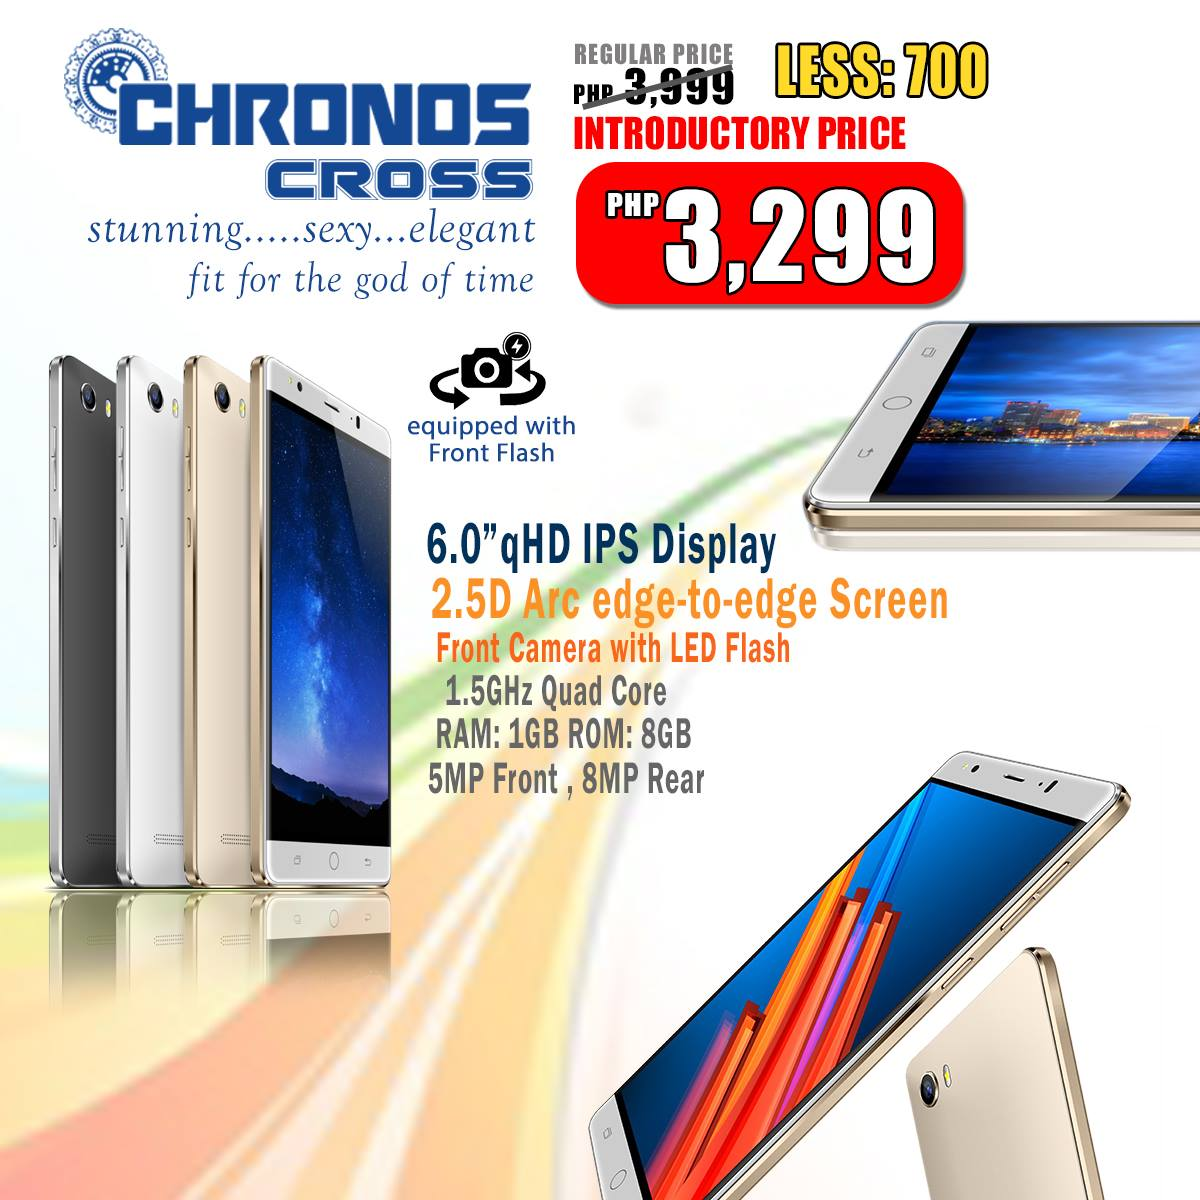 SKK-Chronos-Cross-Specs-Price